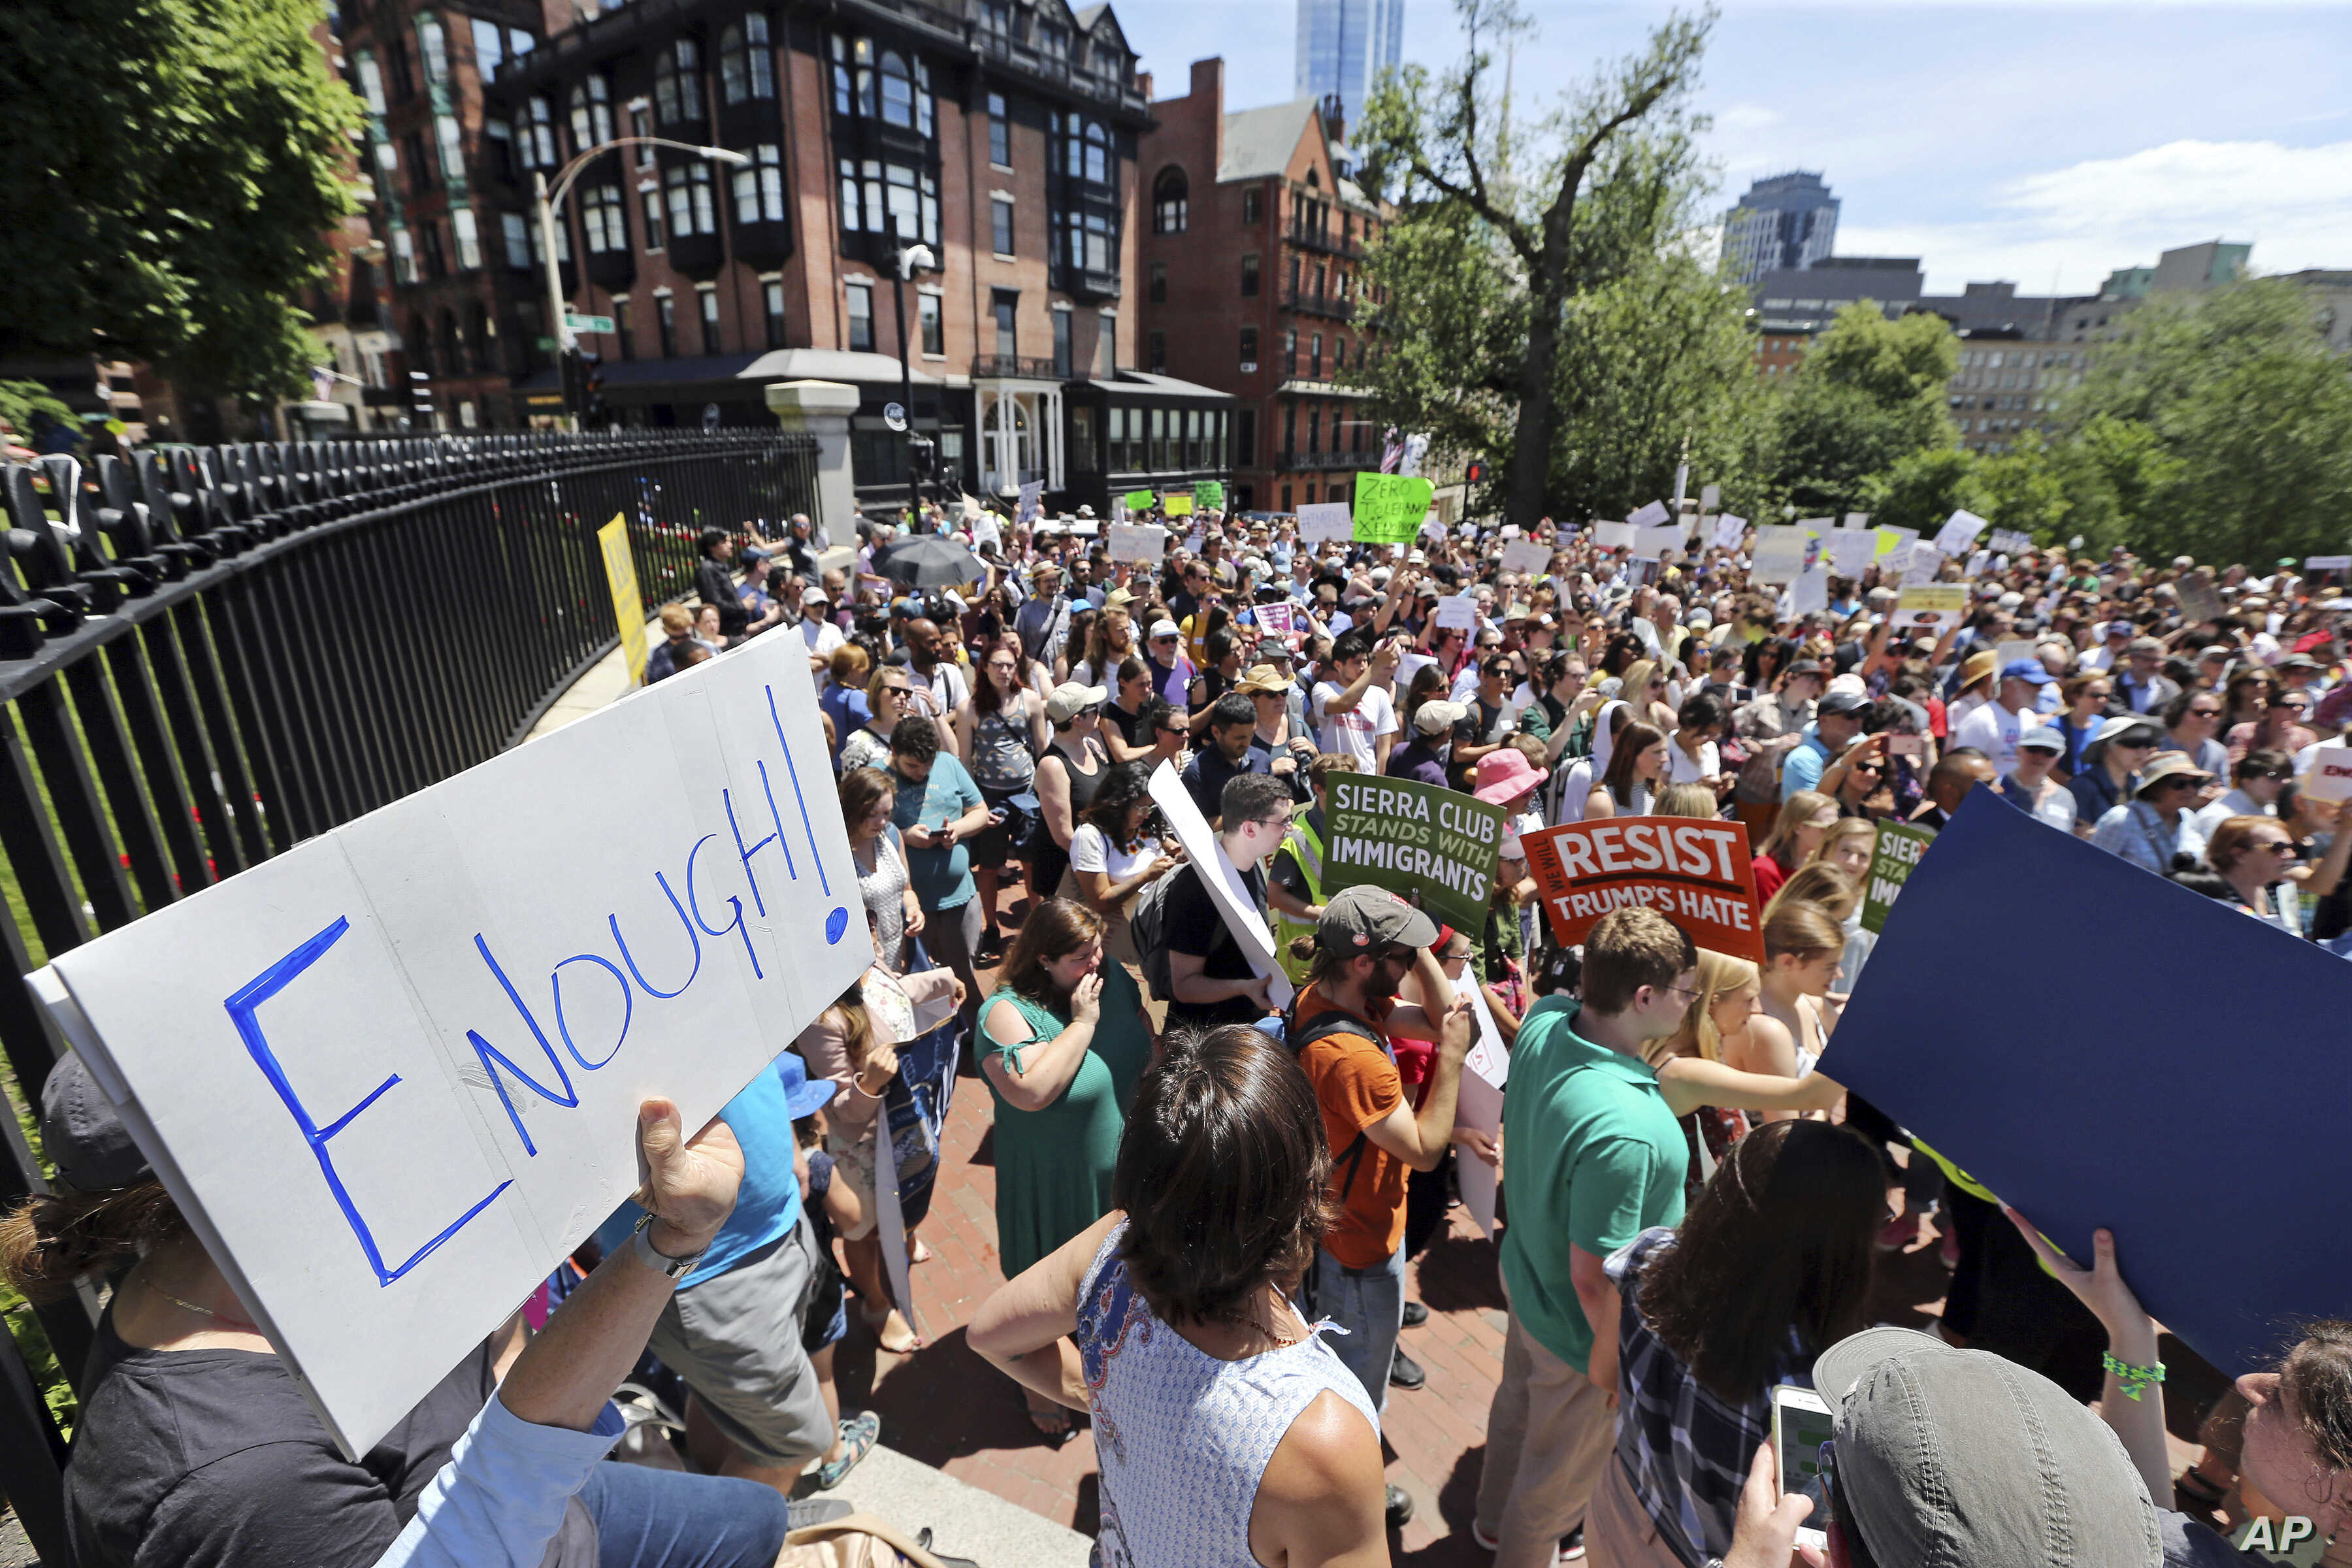 People rally outside the Statehouse, in Boston, June 20, 2018, to protest how immigrants are being treated both on the border with Mexico and in Massachusetts.